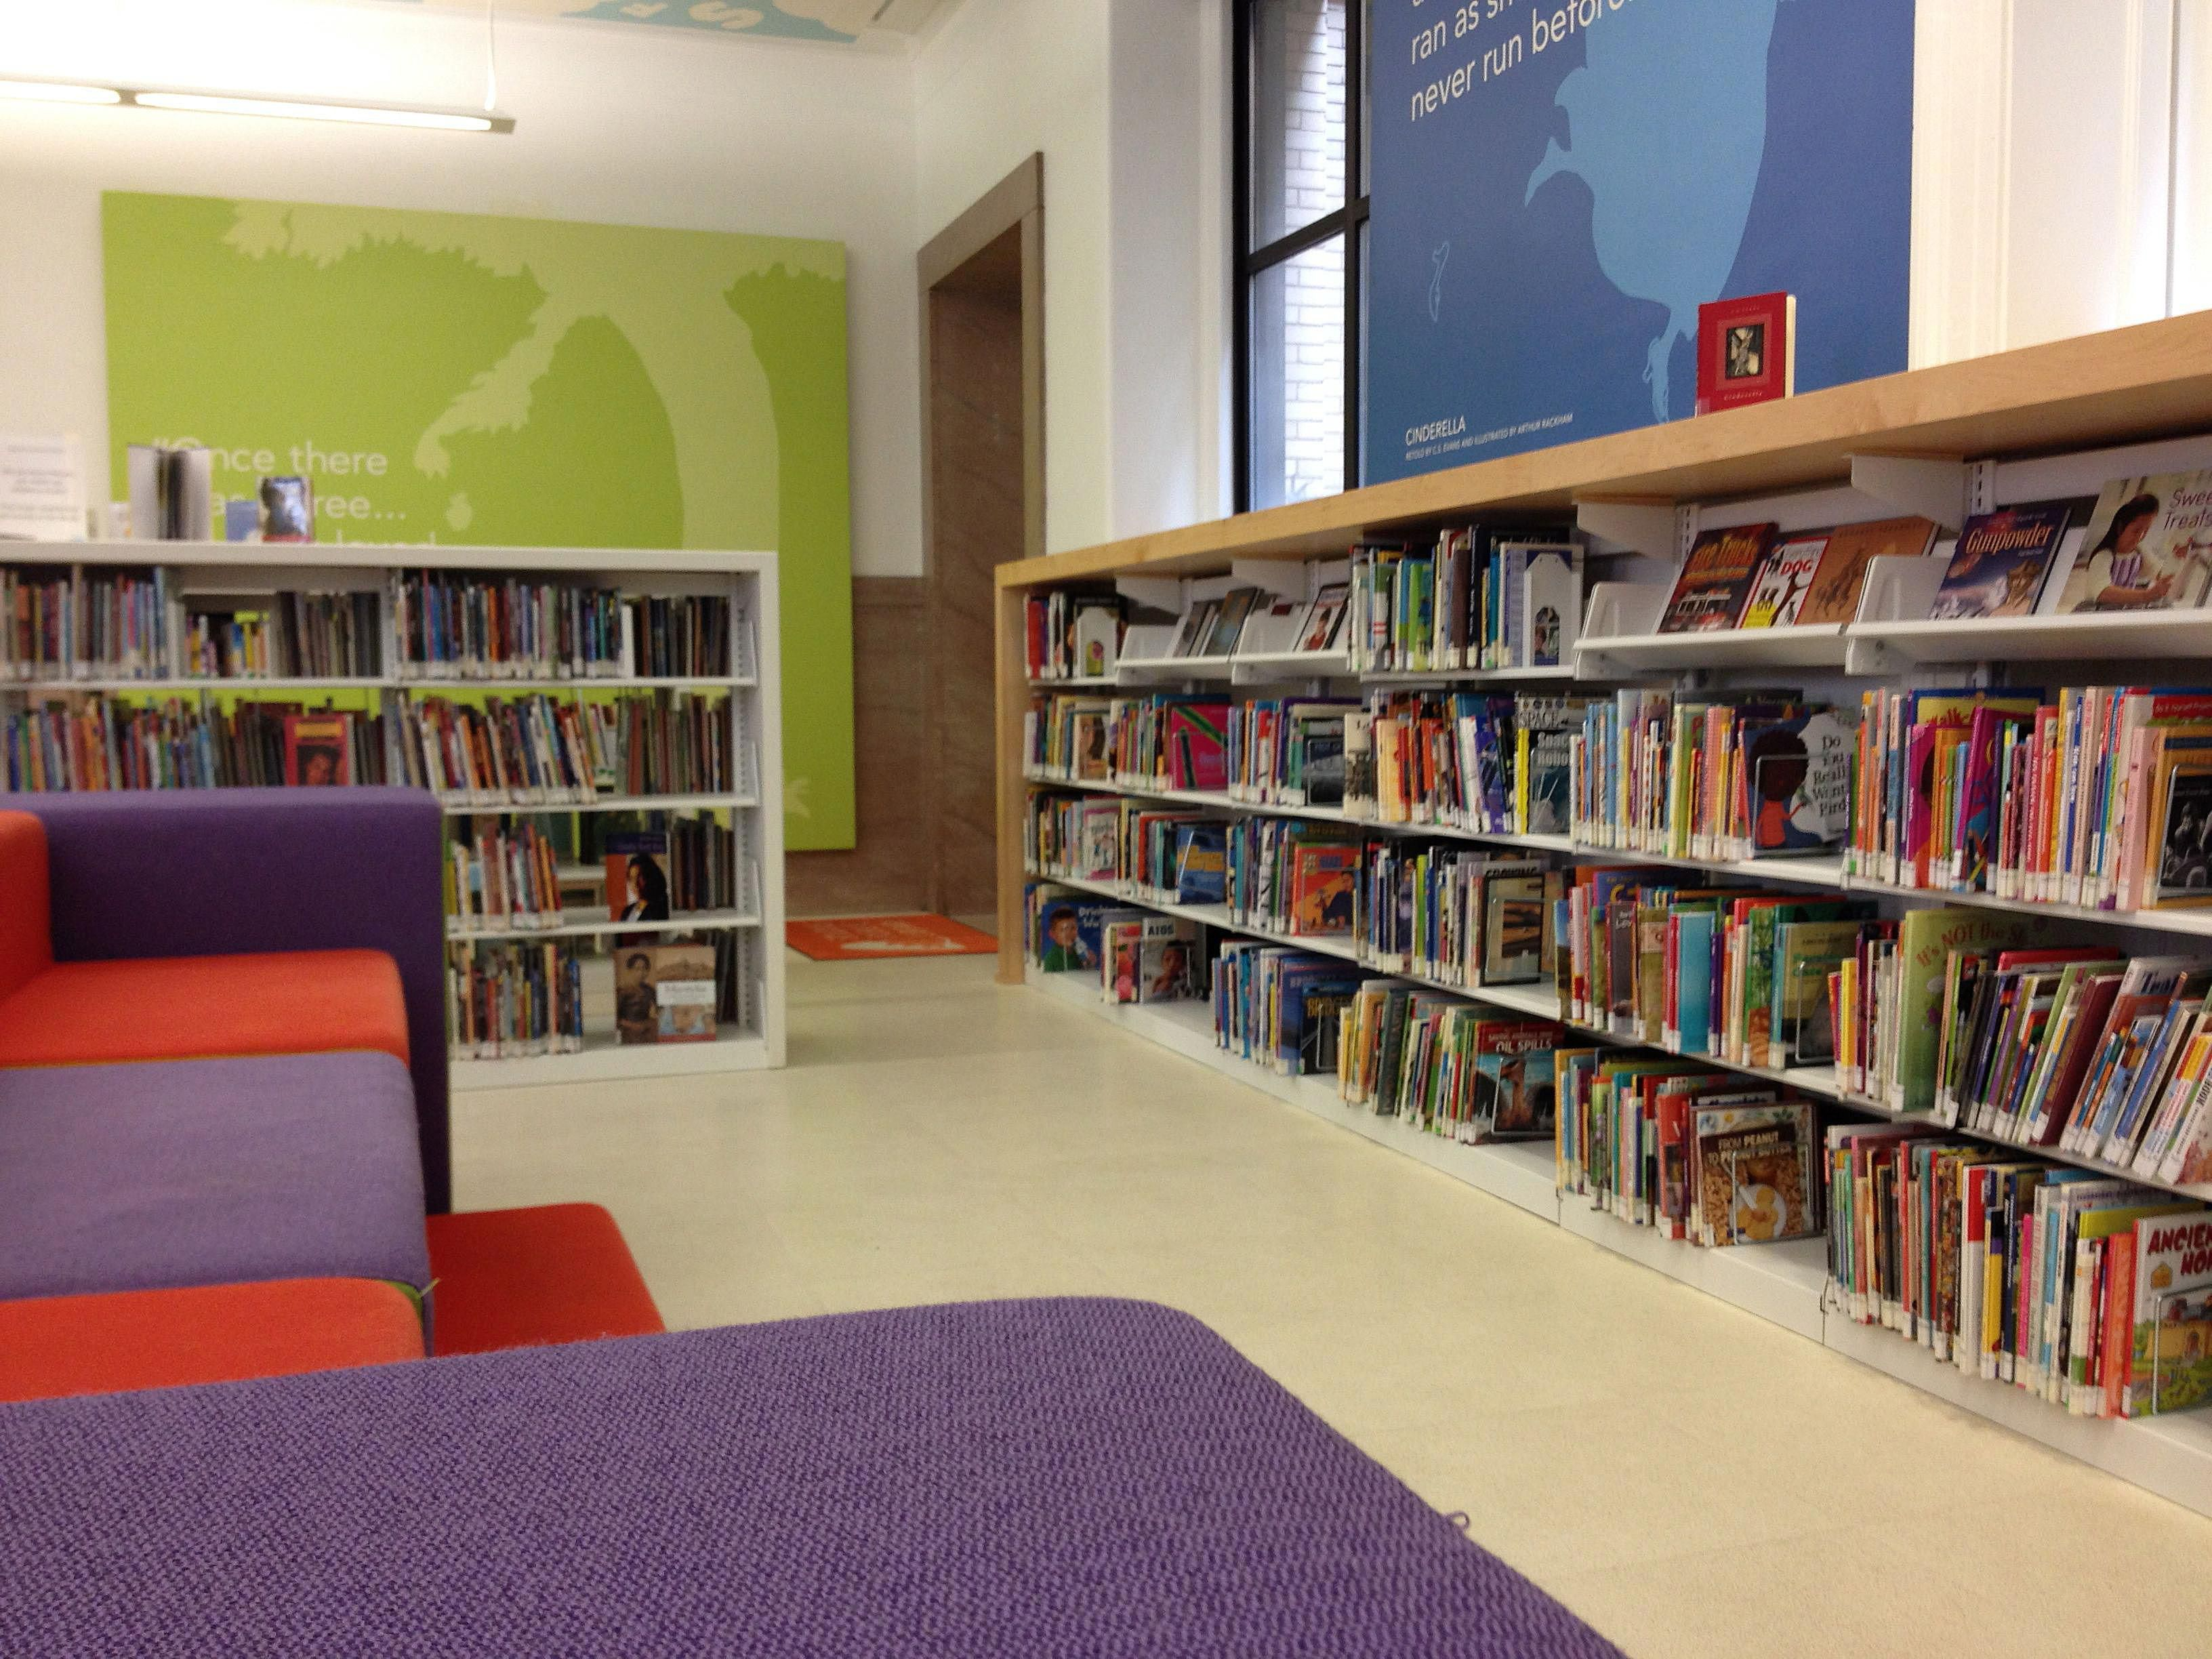 Children's Library at St. Louis Central Library